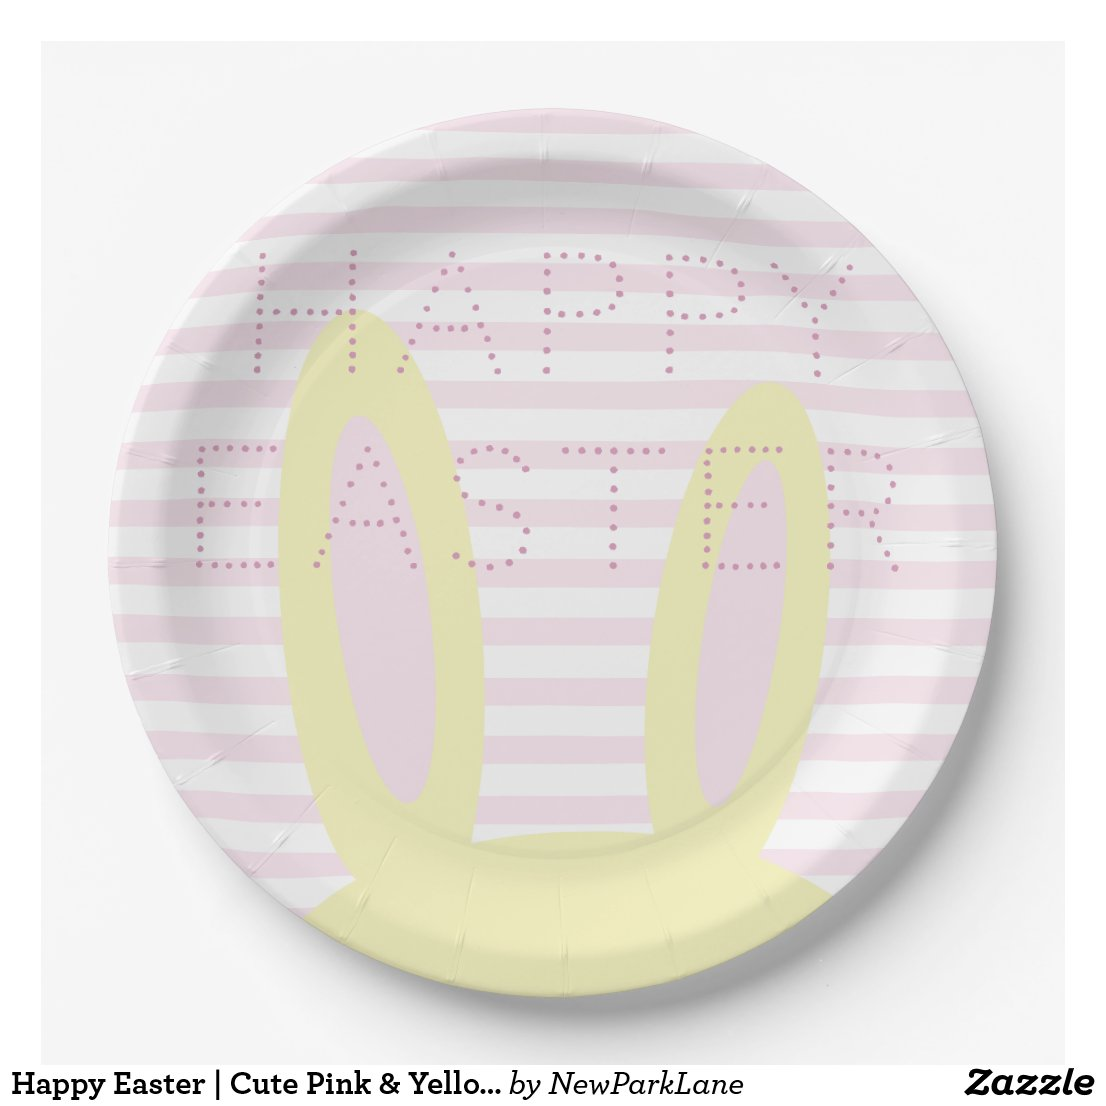 Happy Easter | Cute Pink & Yellow Bunny Ears Paper Plate